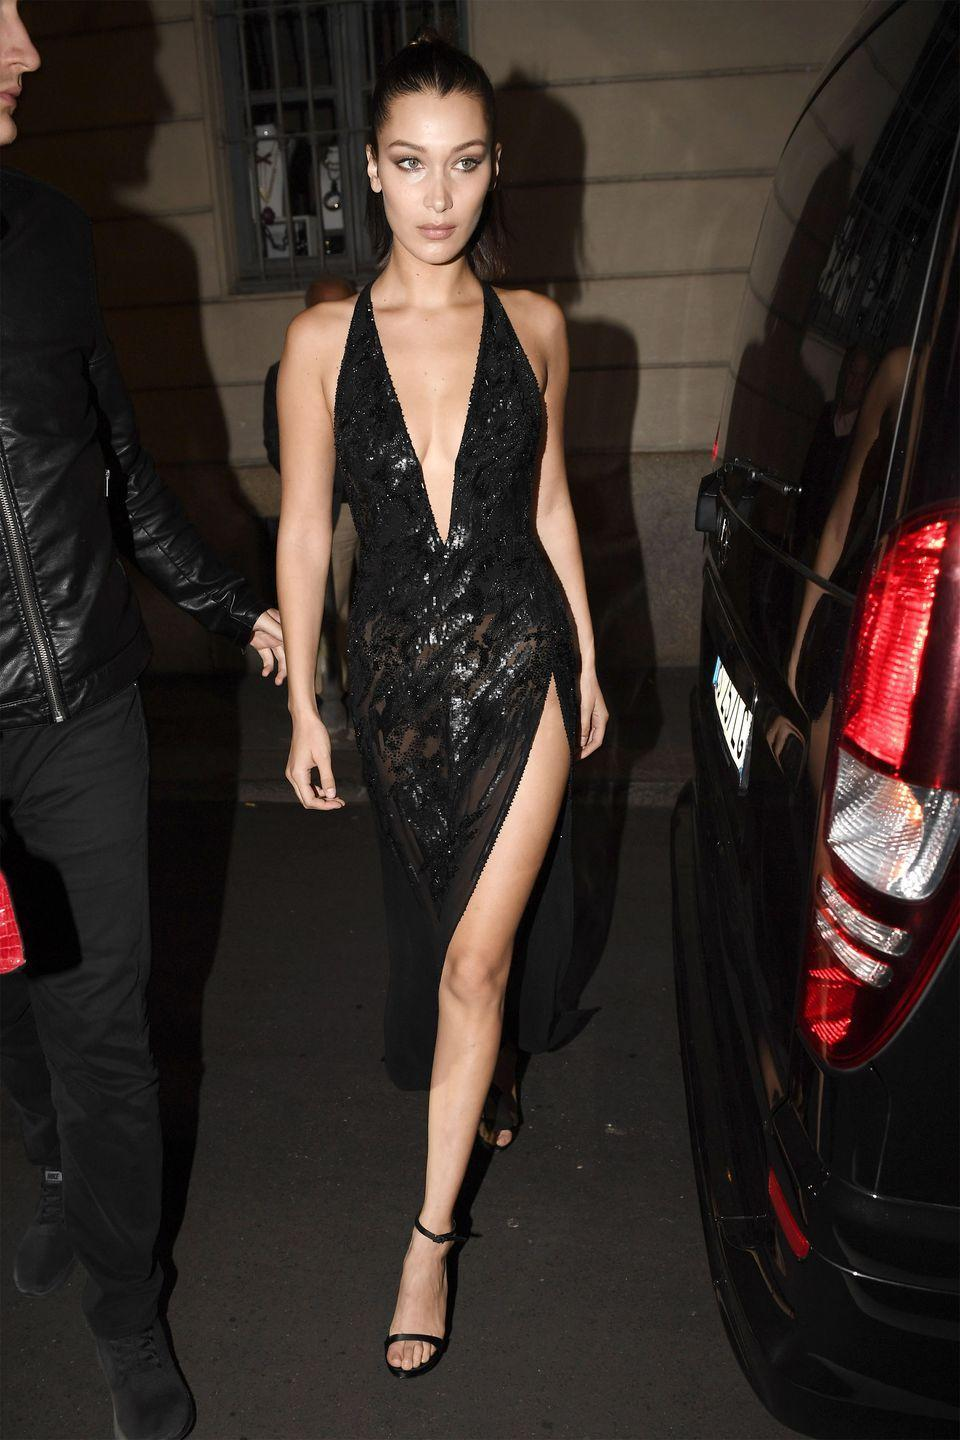 <p>In a black embellished gown with heeled sandals while leaving the Versace fashion show after party in Milan. </p>